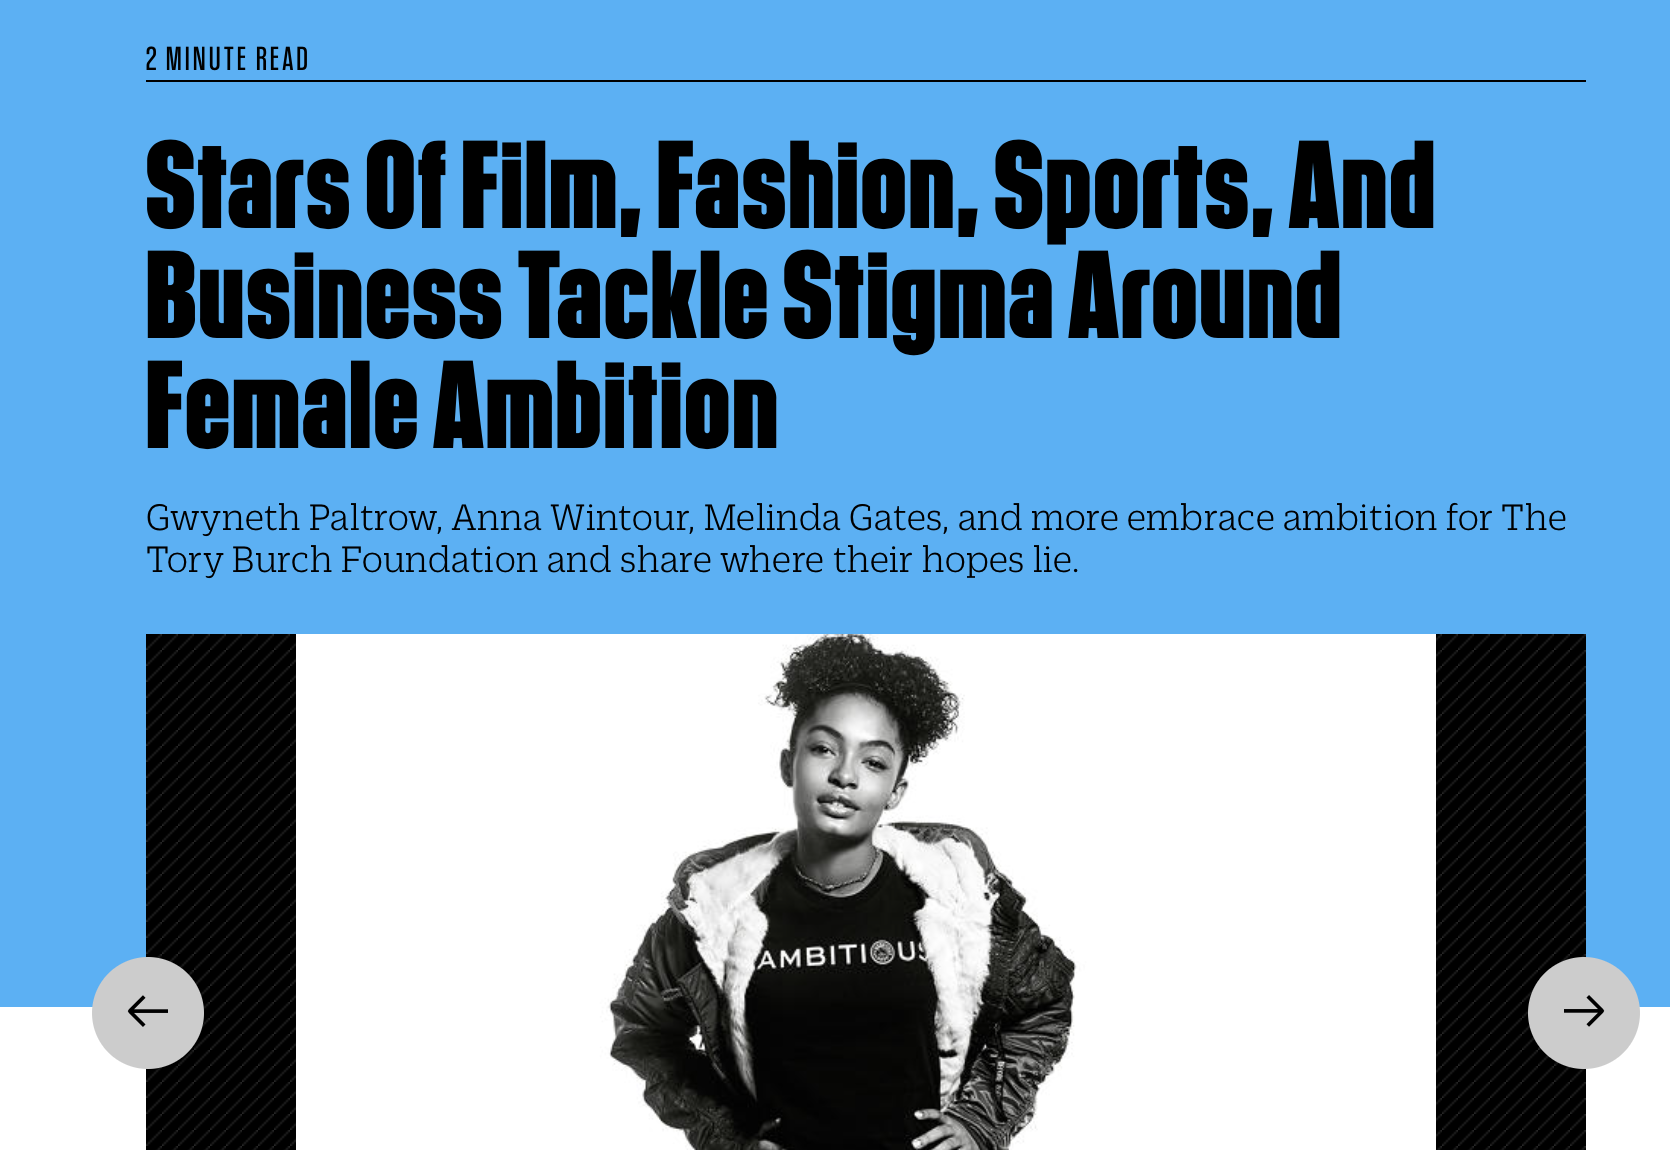 Fast Company 'Stars of Film, Fashion, Sports, and Business Tackle Stigma Around Female Ambition'